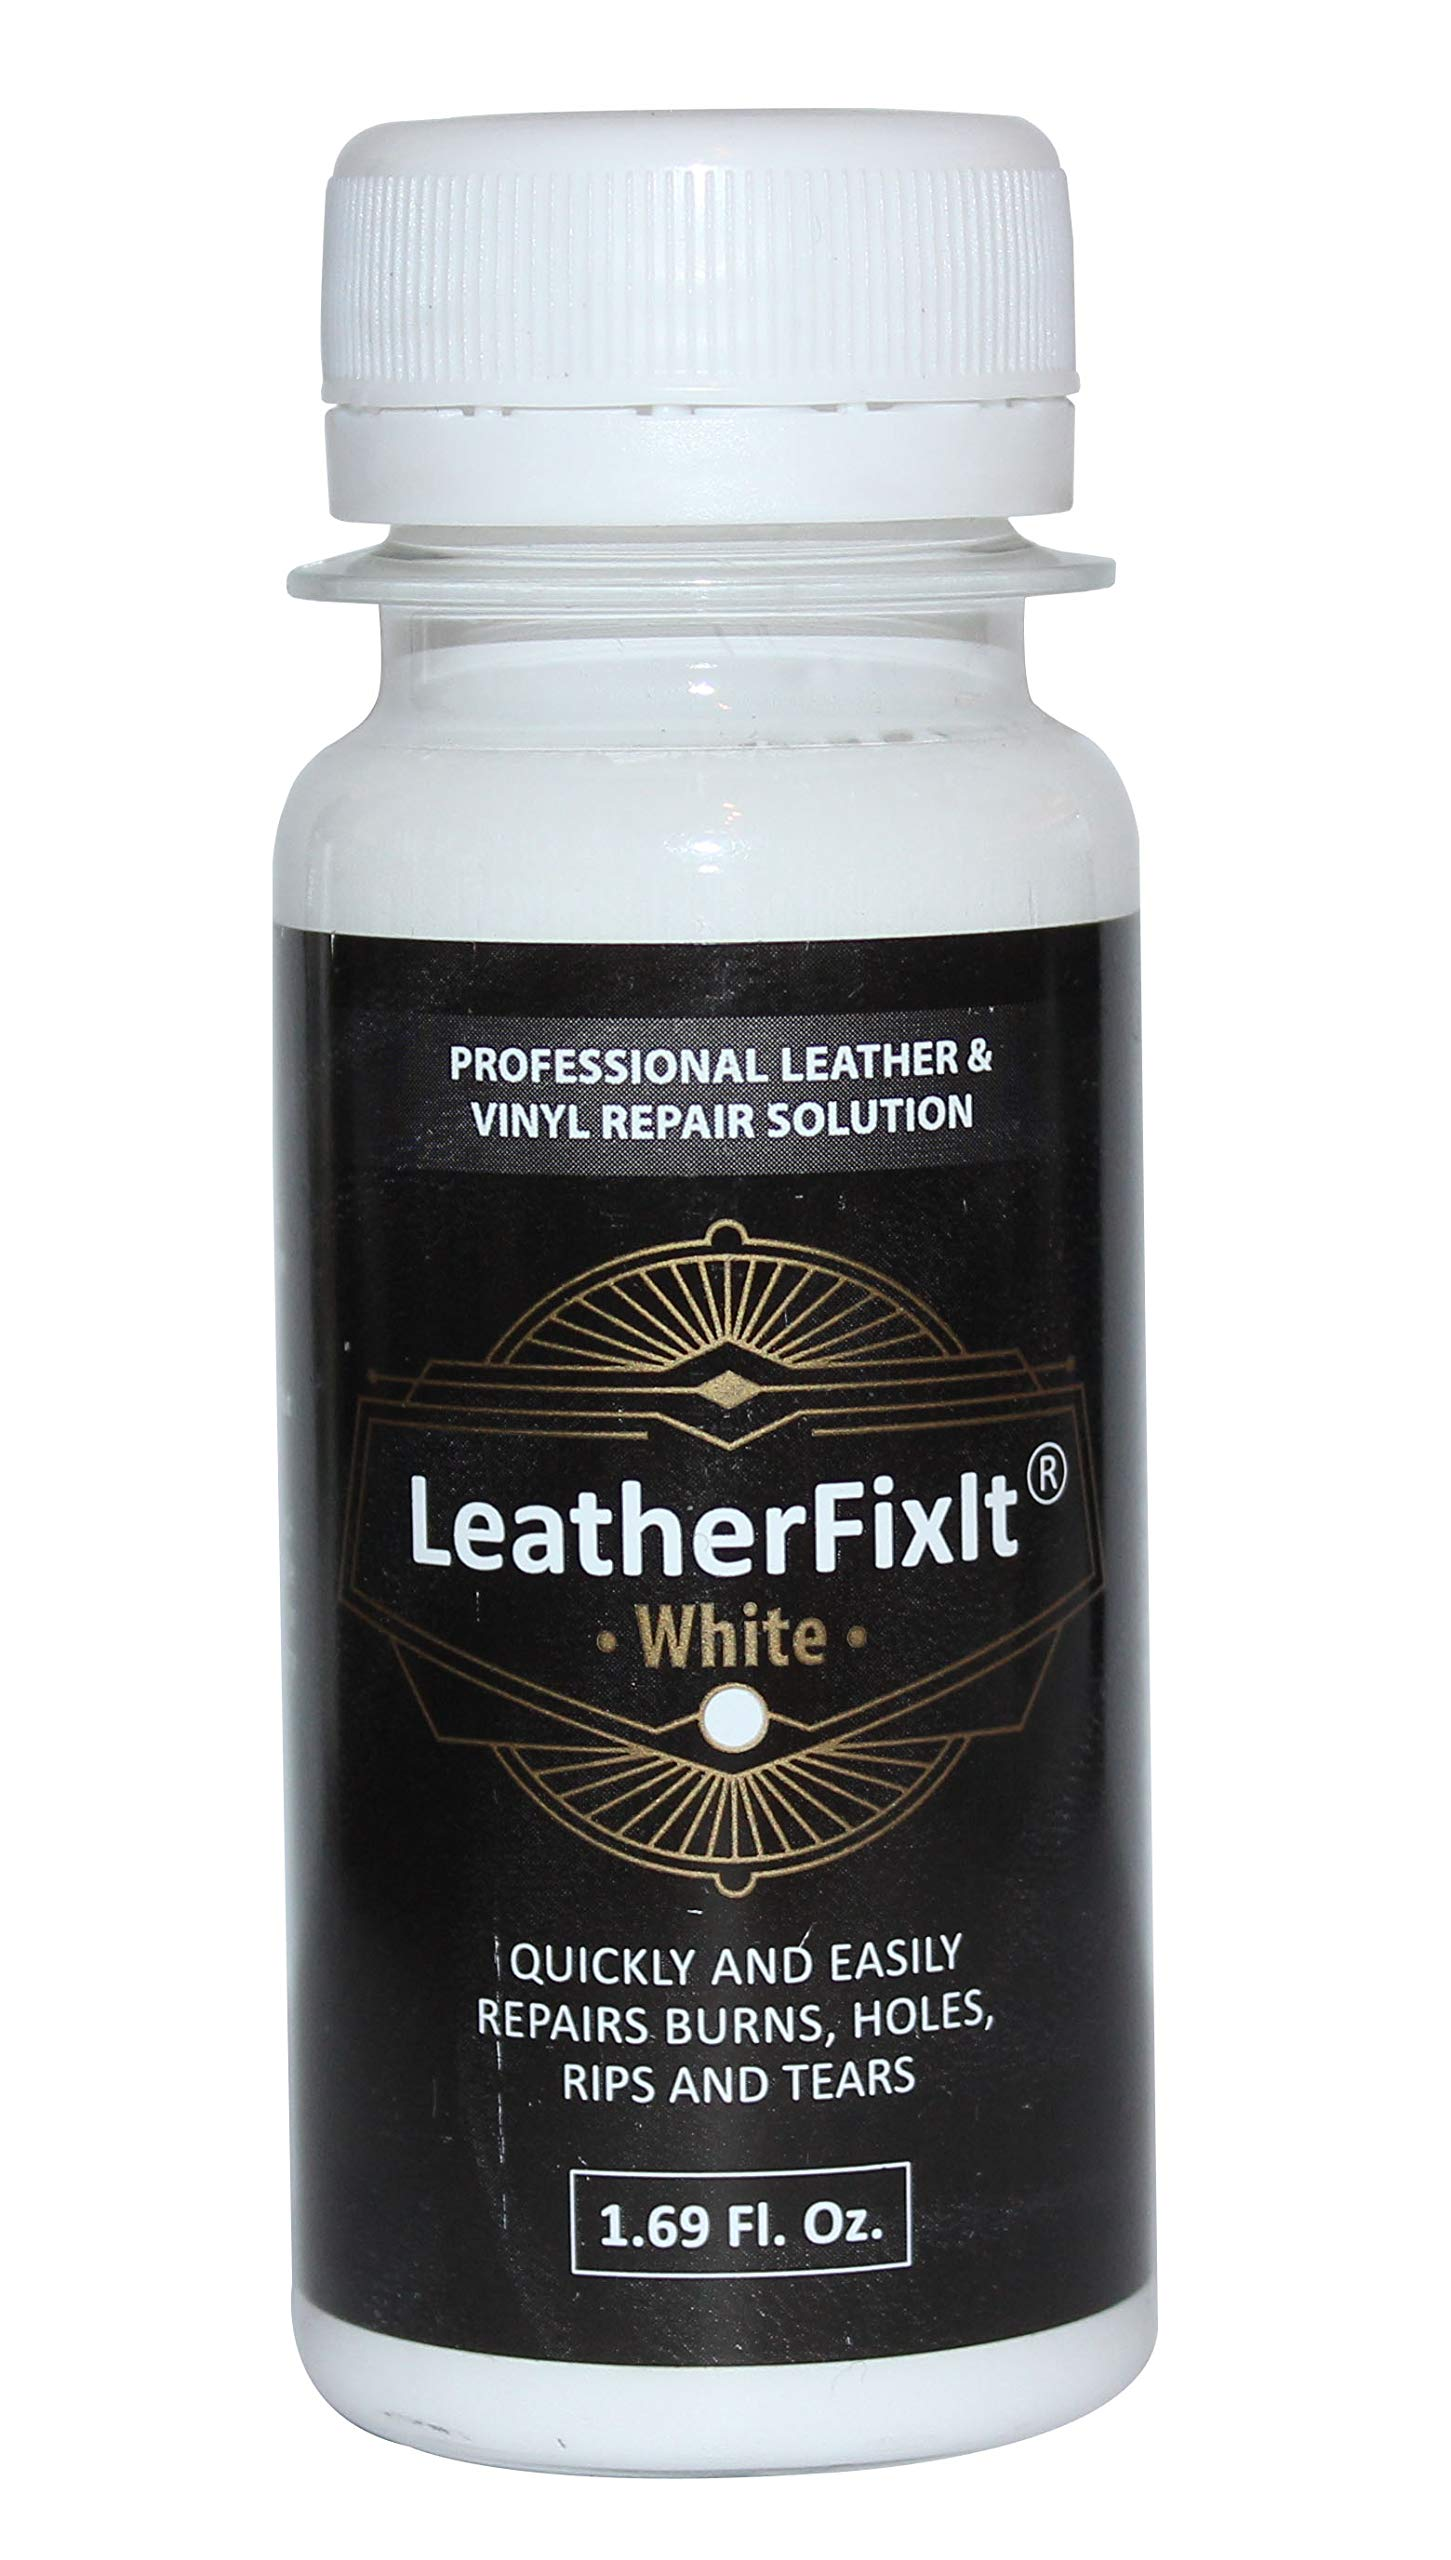 White Leather & Vinyl Repair Solution | No-Heat, Fast Drying | Furniture, Car Seats, Couch, Chair, Jacket, Boots, Belt and Purse Repair Adhesive by LeatherFixIt